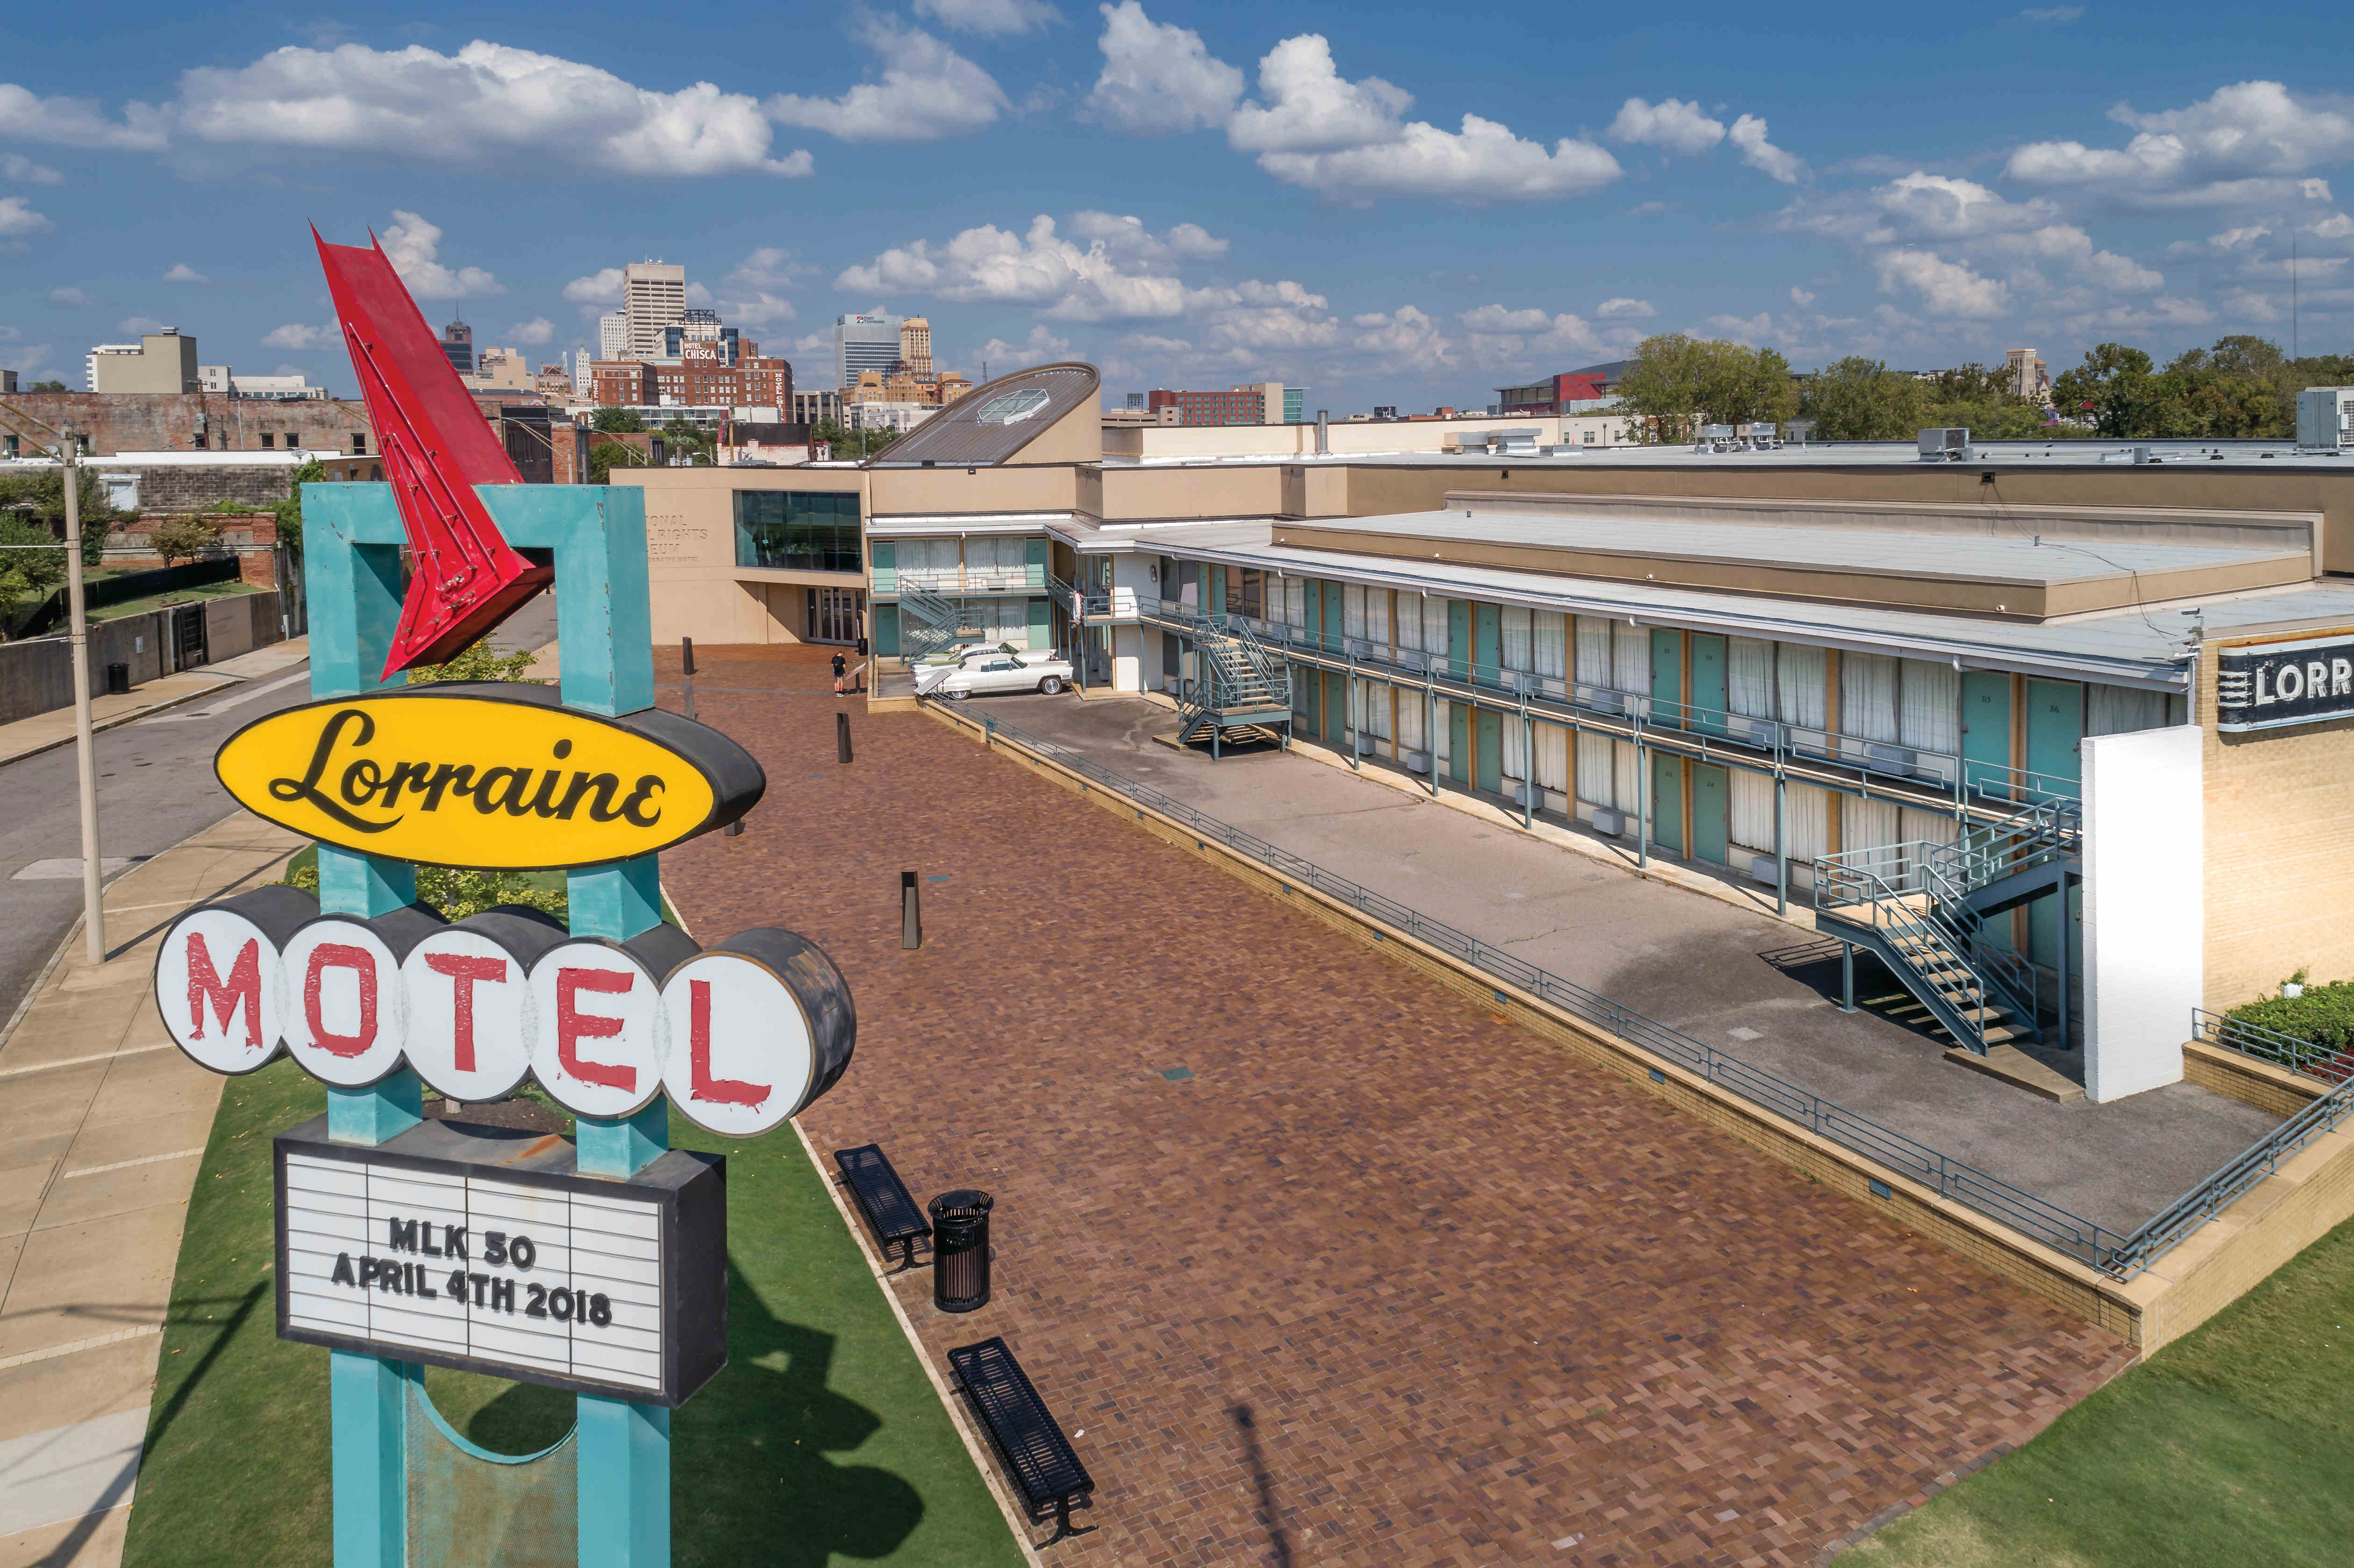 The National Civil Rights Museum, Memphis, Tennessee